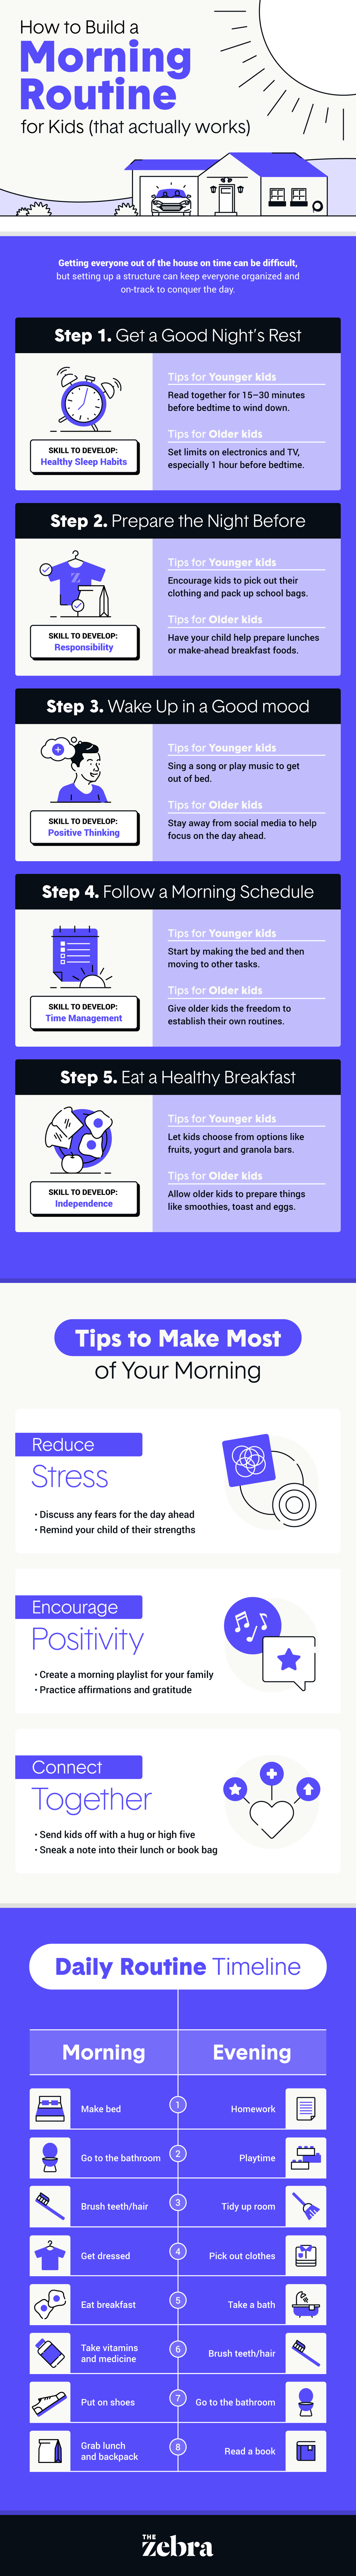 Morning and Evening Routines infographic